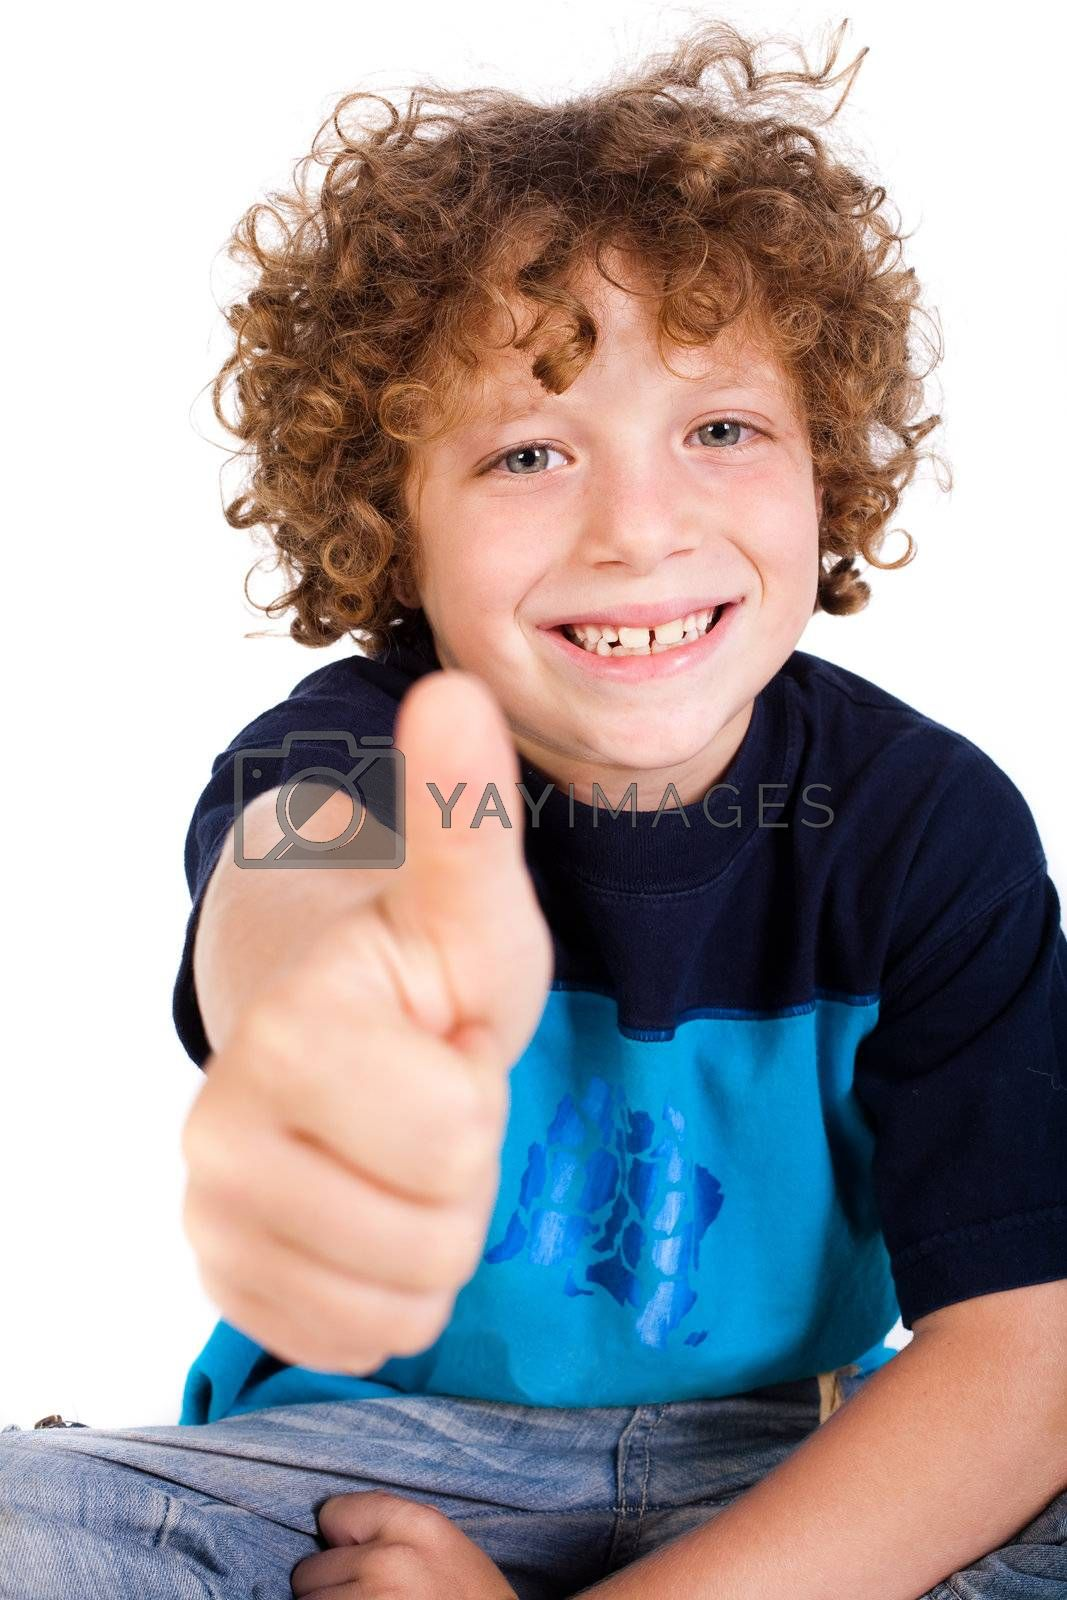 Casual young kid showing thumbs up and smiling at camera.